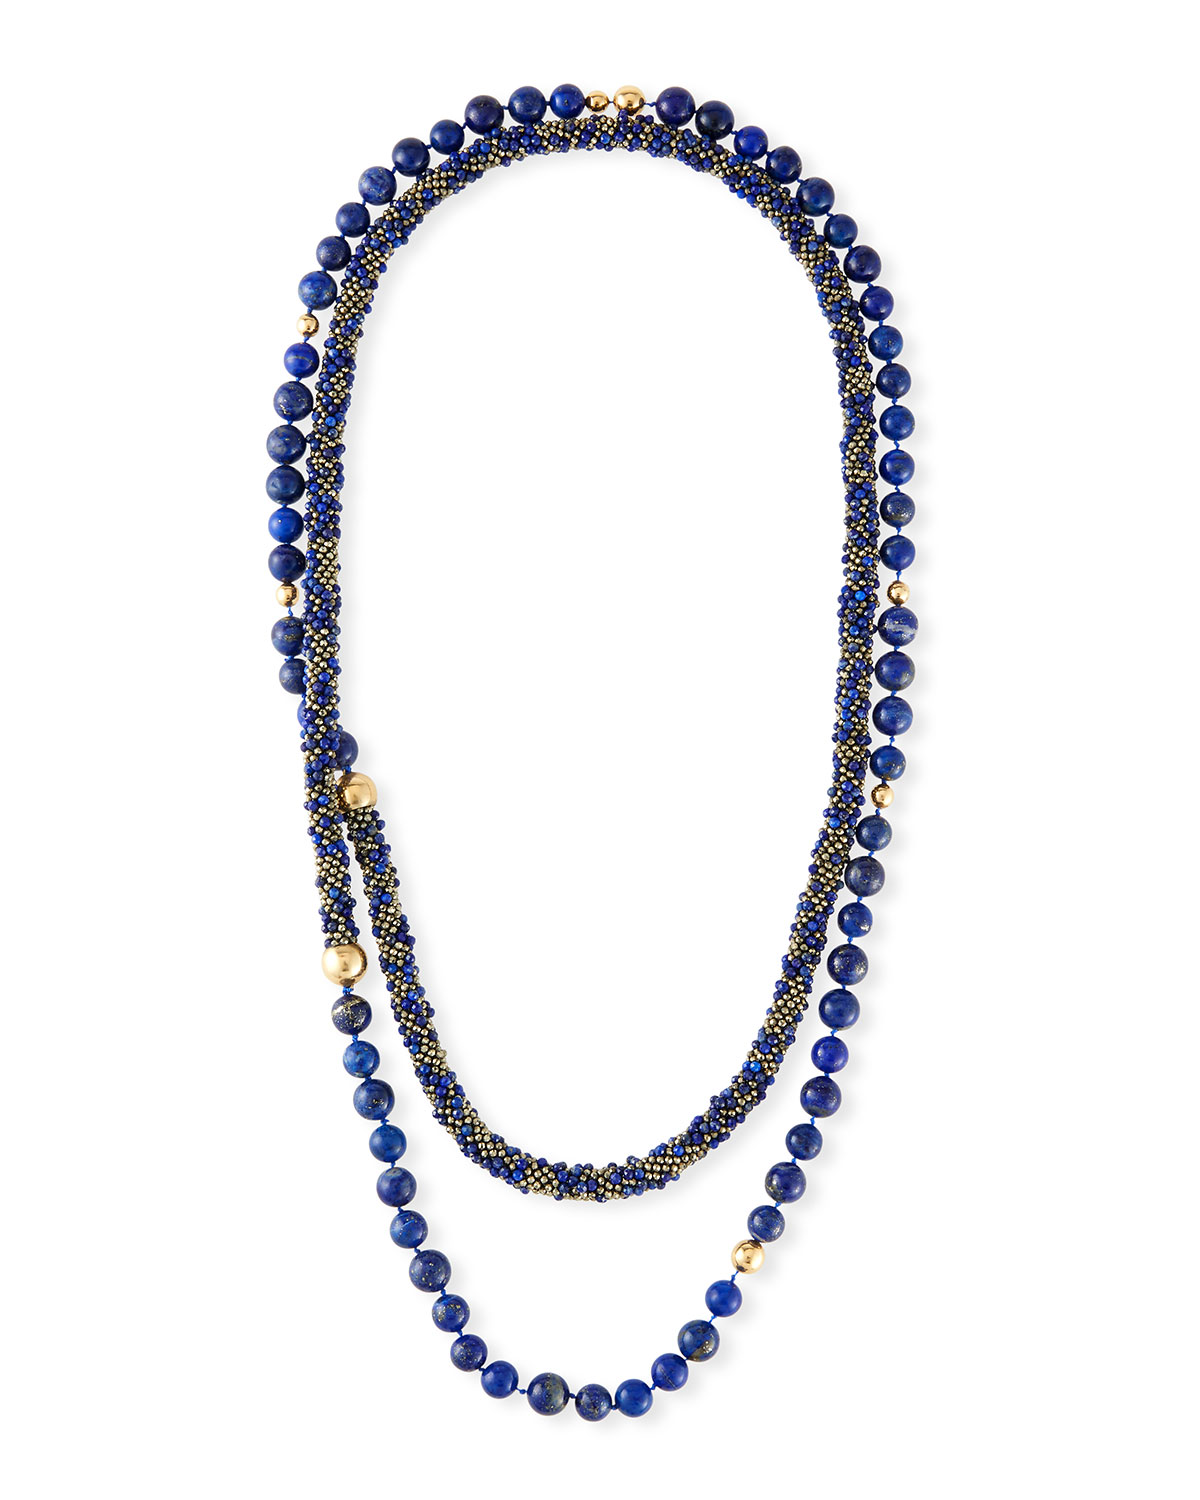 ADAM FOSTER FINE JEWELRY Long Lapis & Pyrite Beaded Necklace